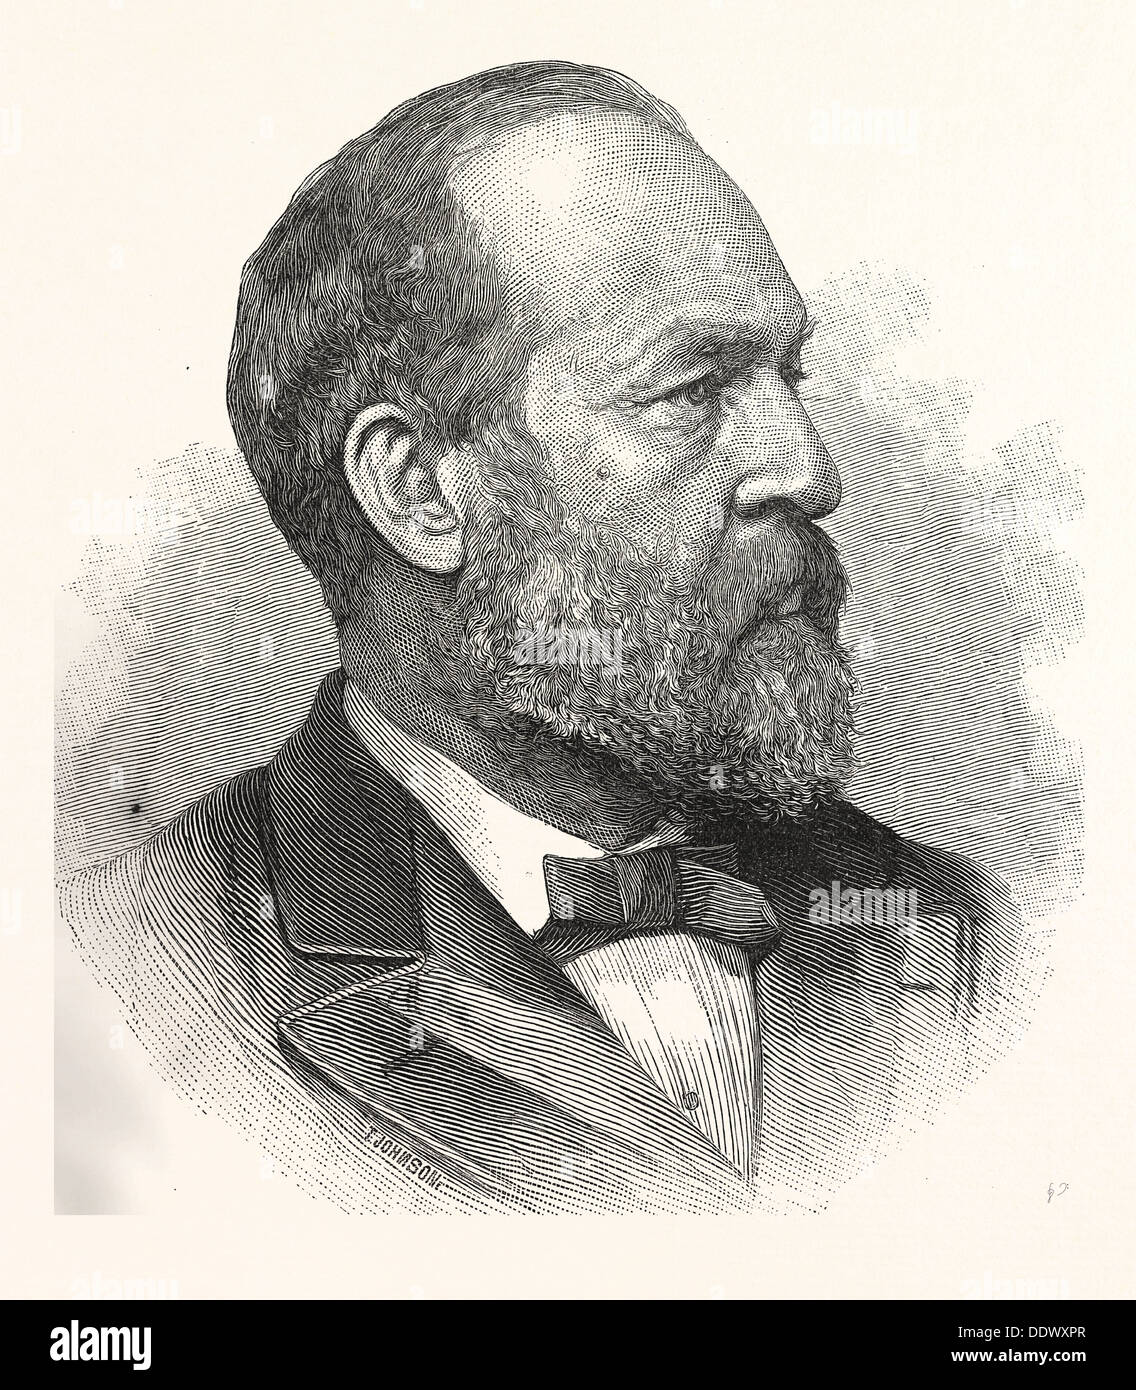 President garfield stock photos president garfield stock images